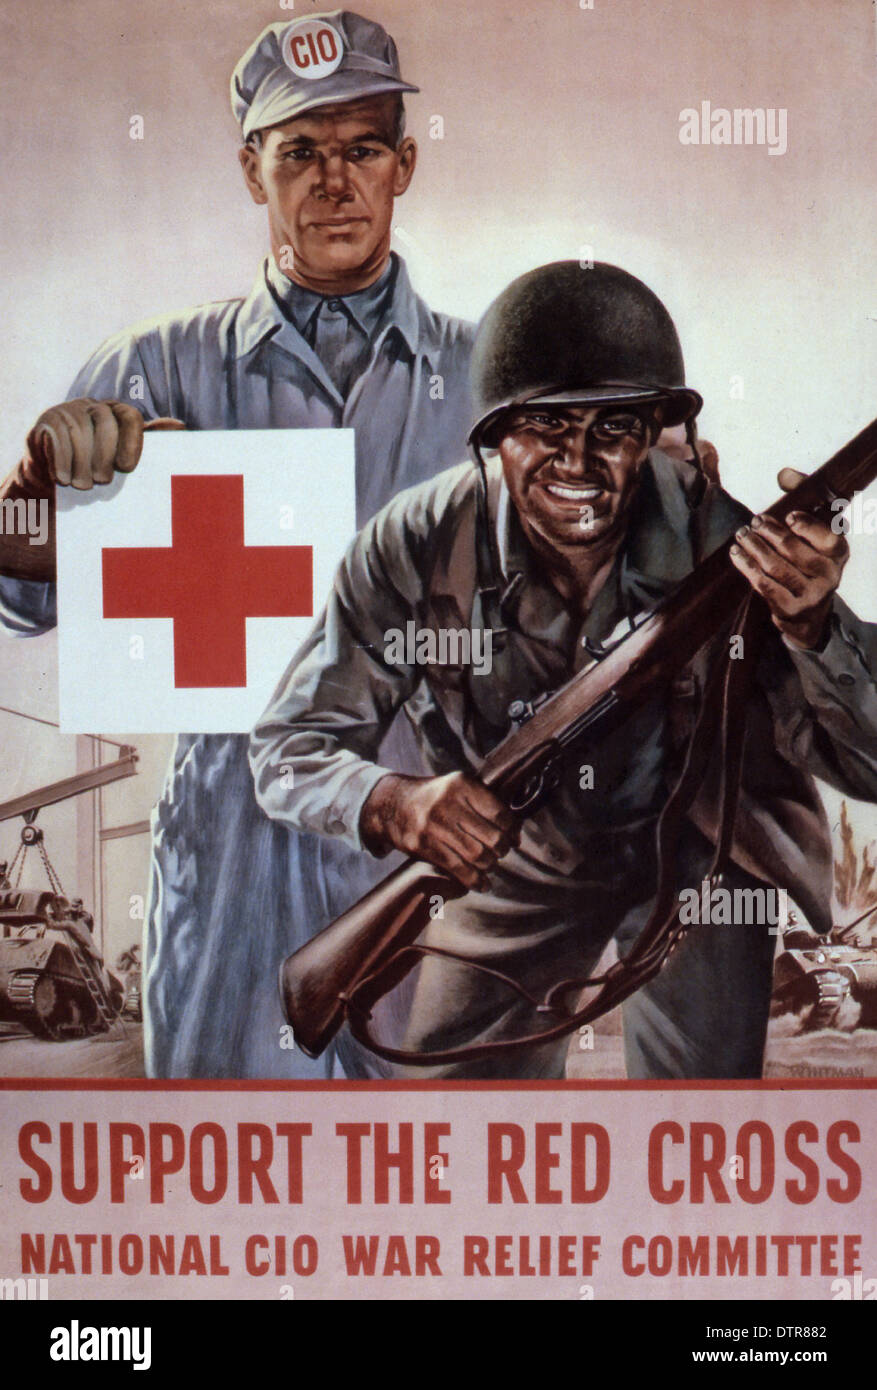 An American Red Cross propaganda poster to promote support for the Red Cross  during WW2 - Stock Image